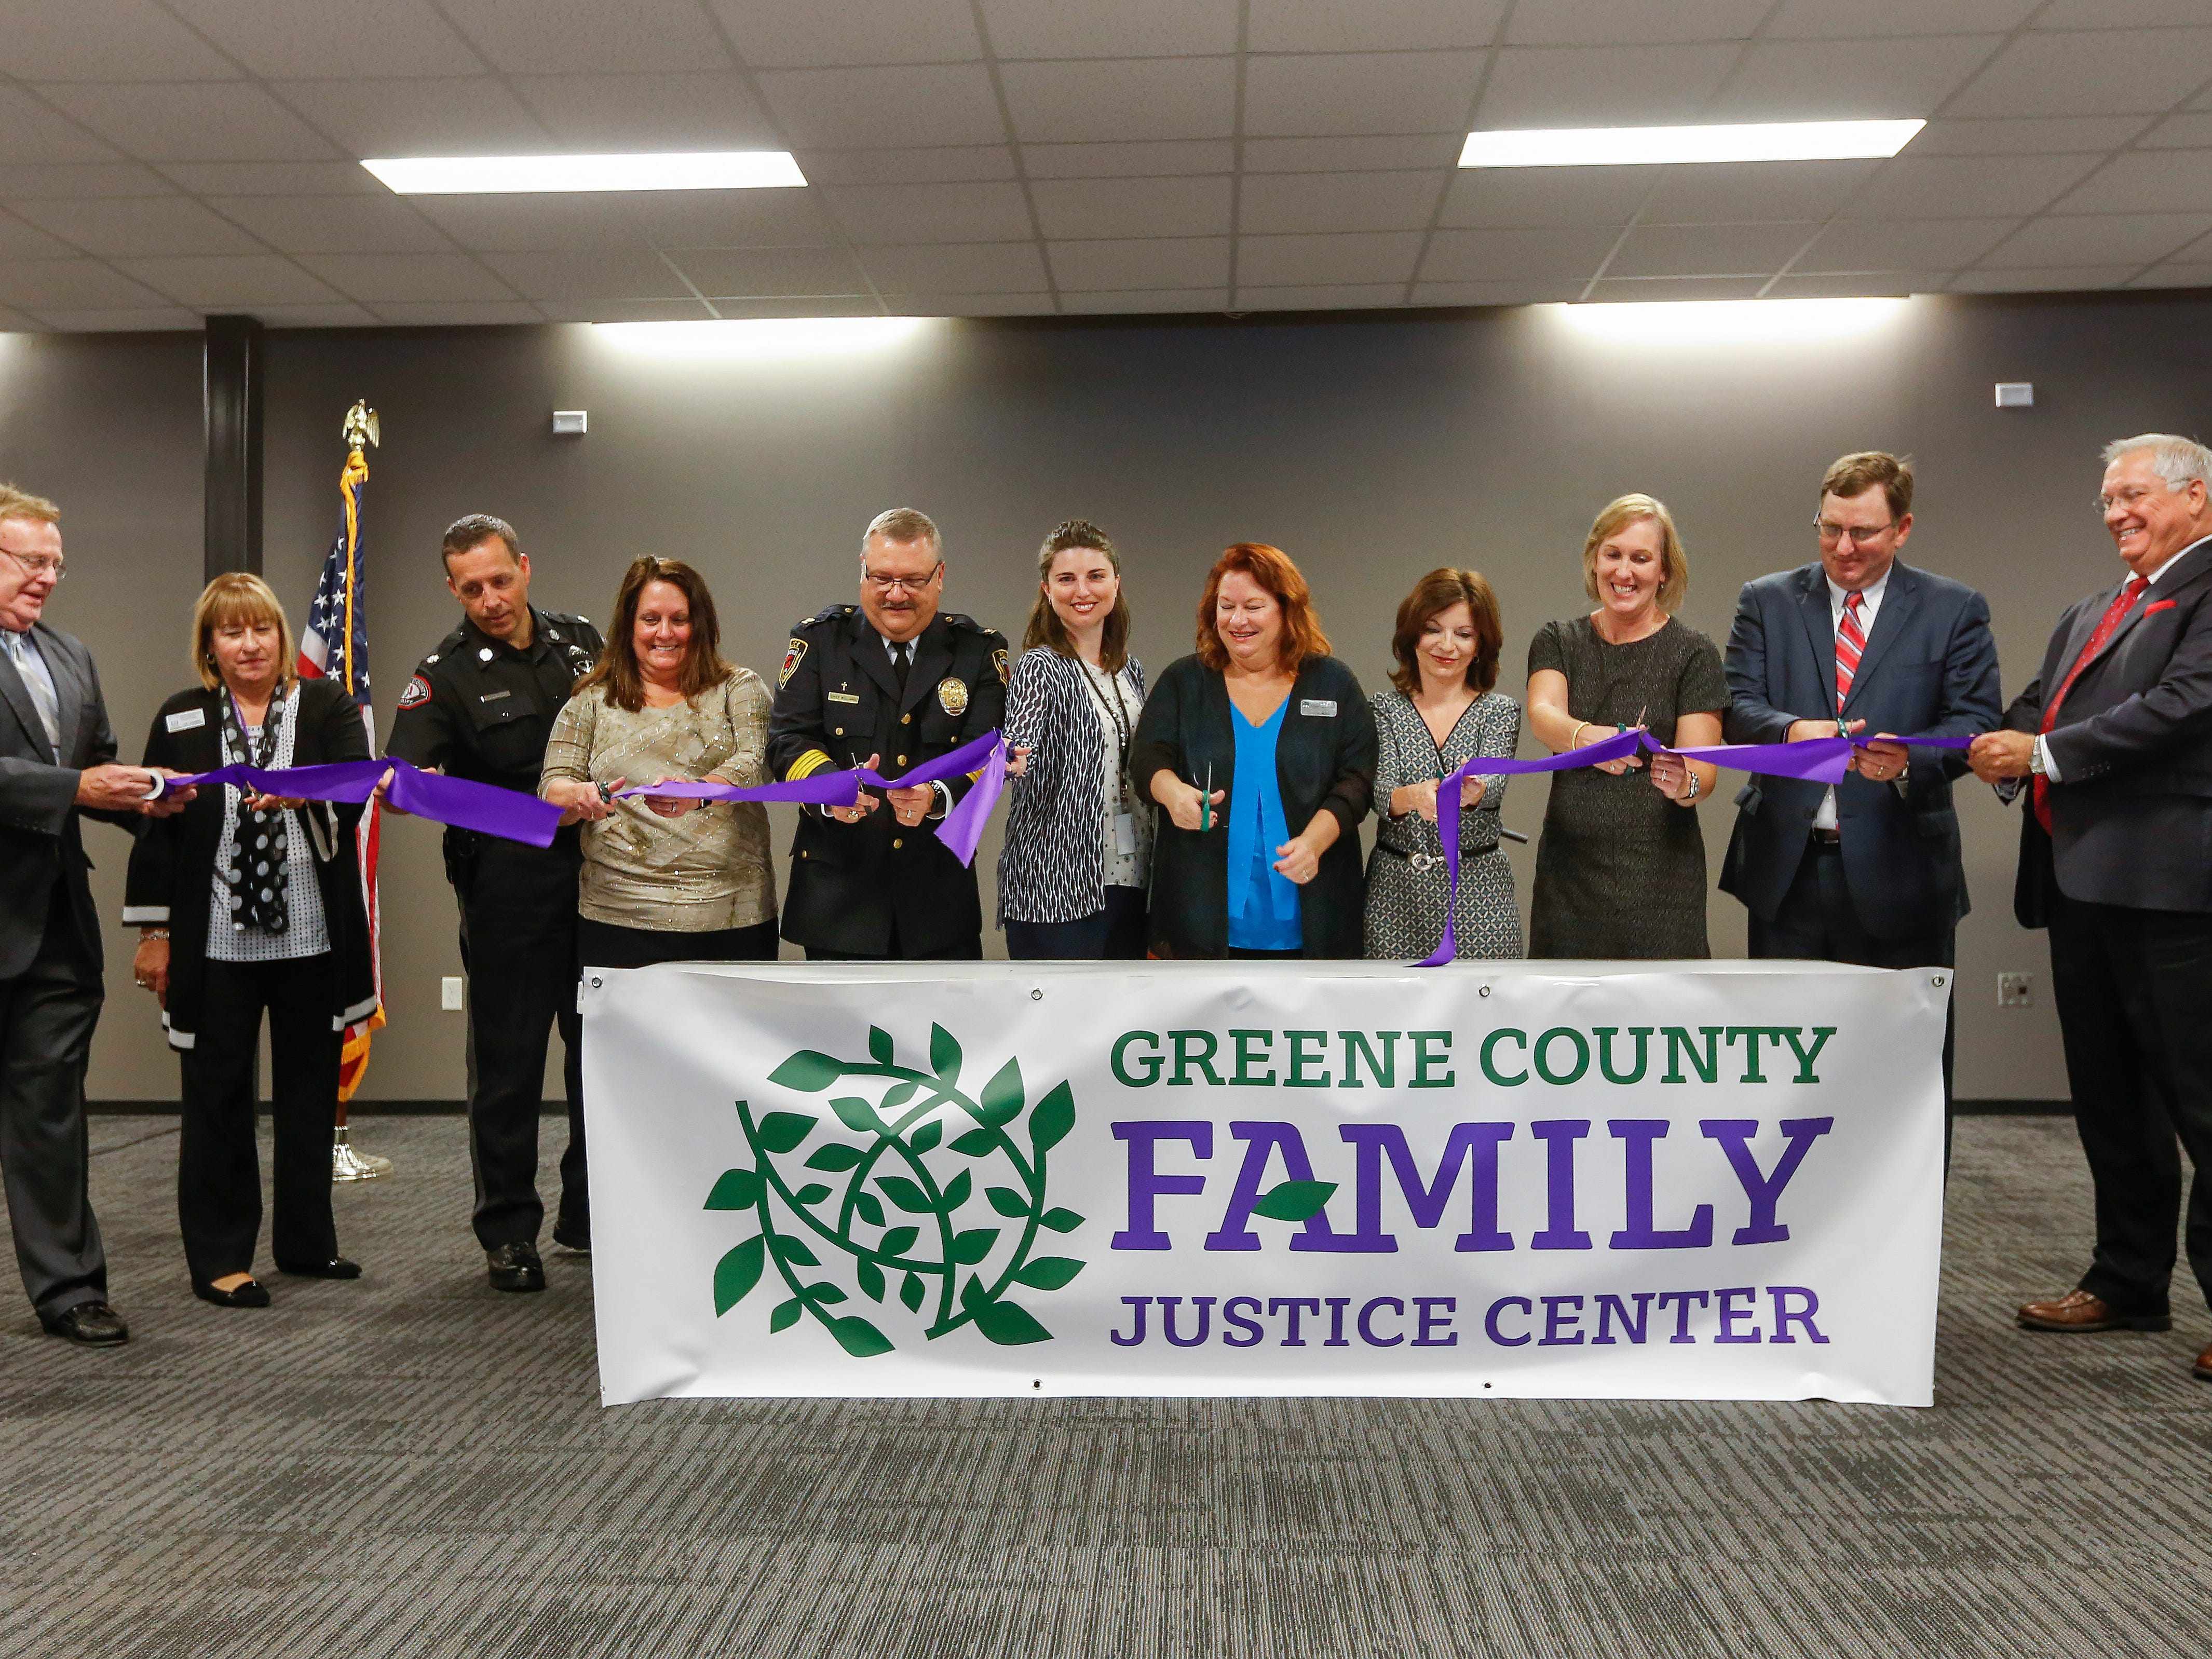 Springfield and Greene County officials along with victim advocates participate in the ribbon cutting ceremony for the Family Justice Center on Monday, Oct. 1, 2018.